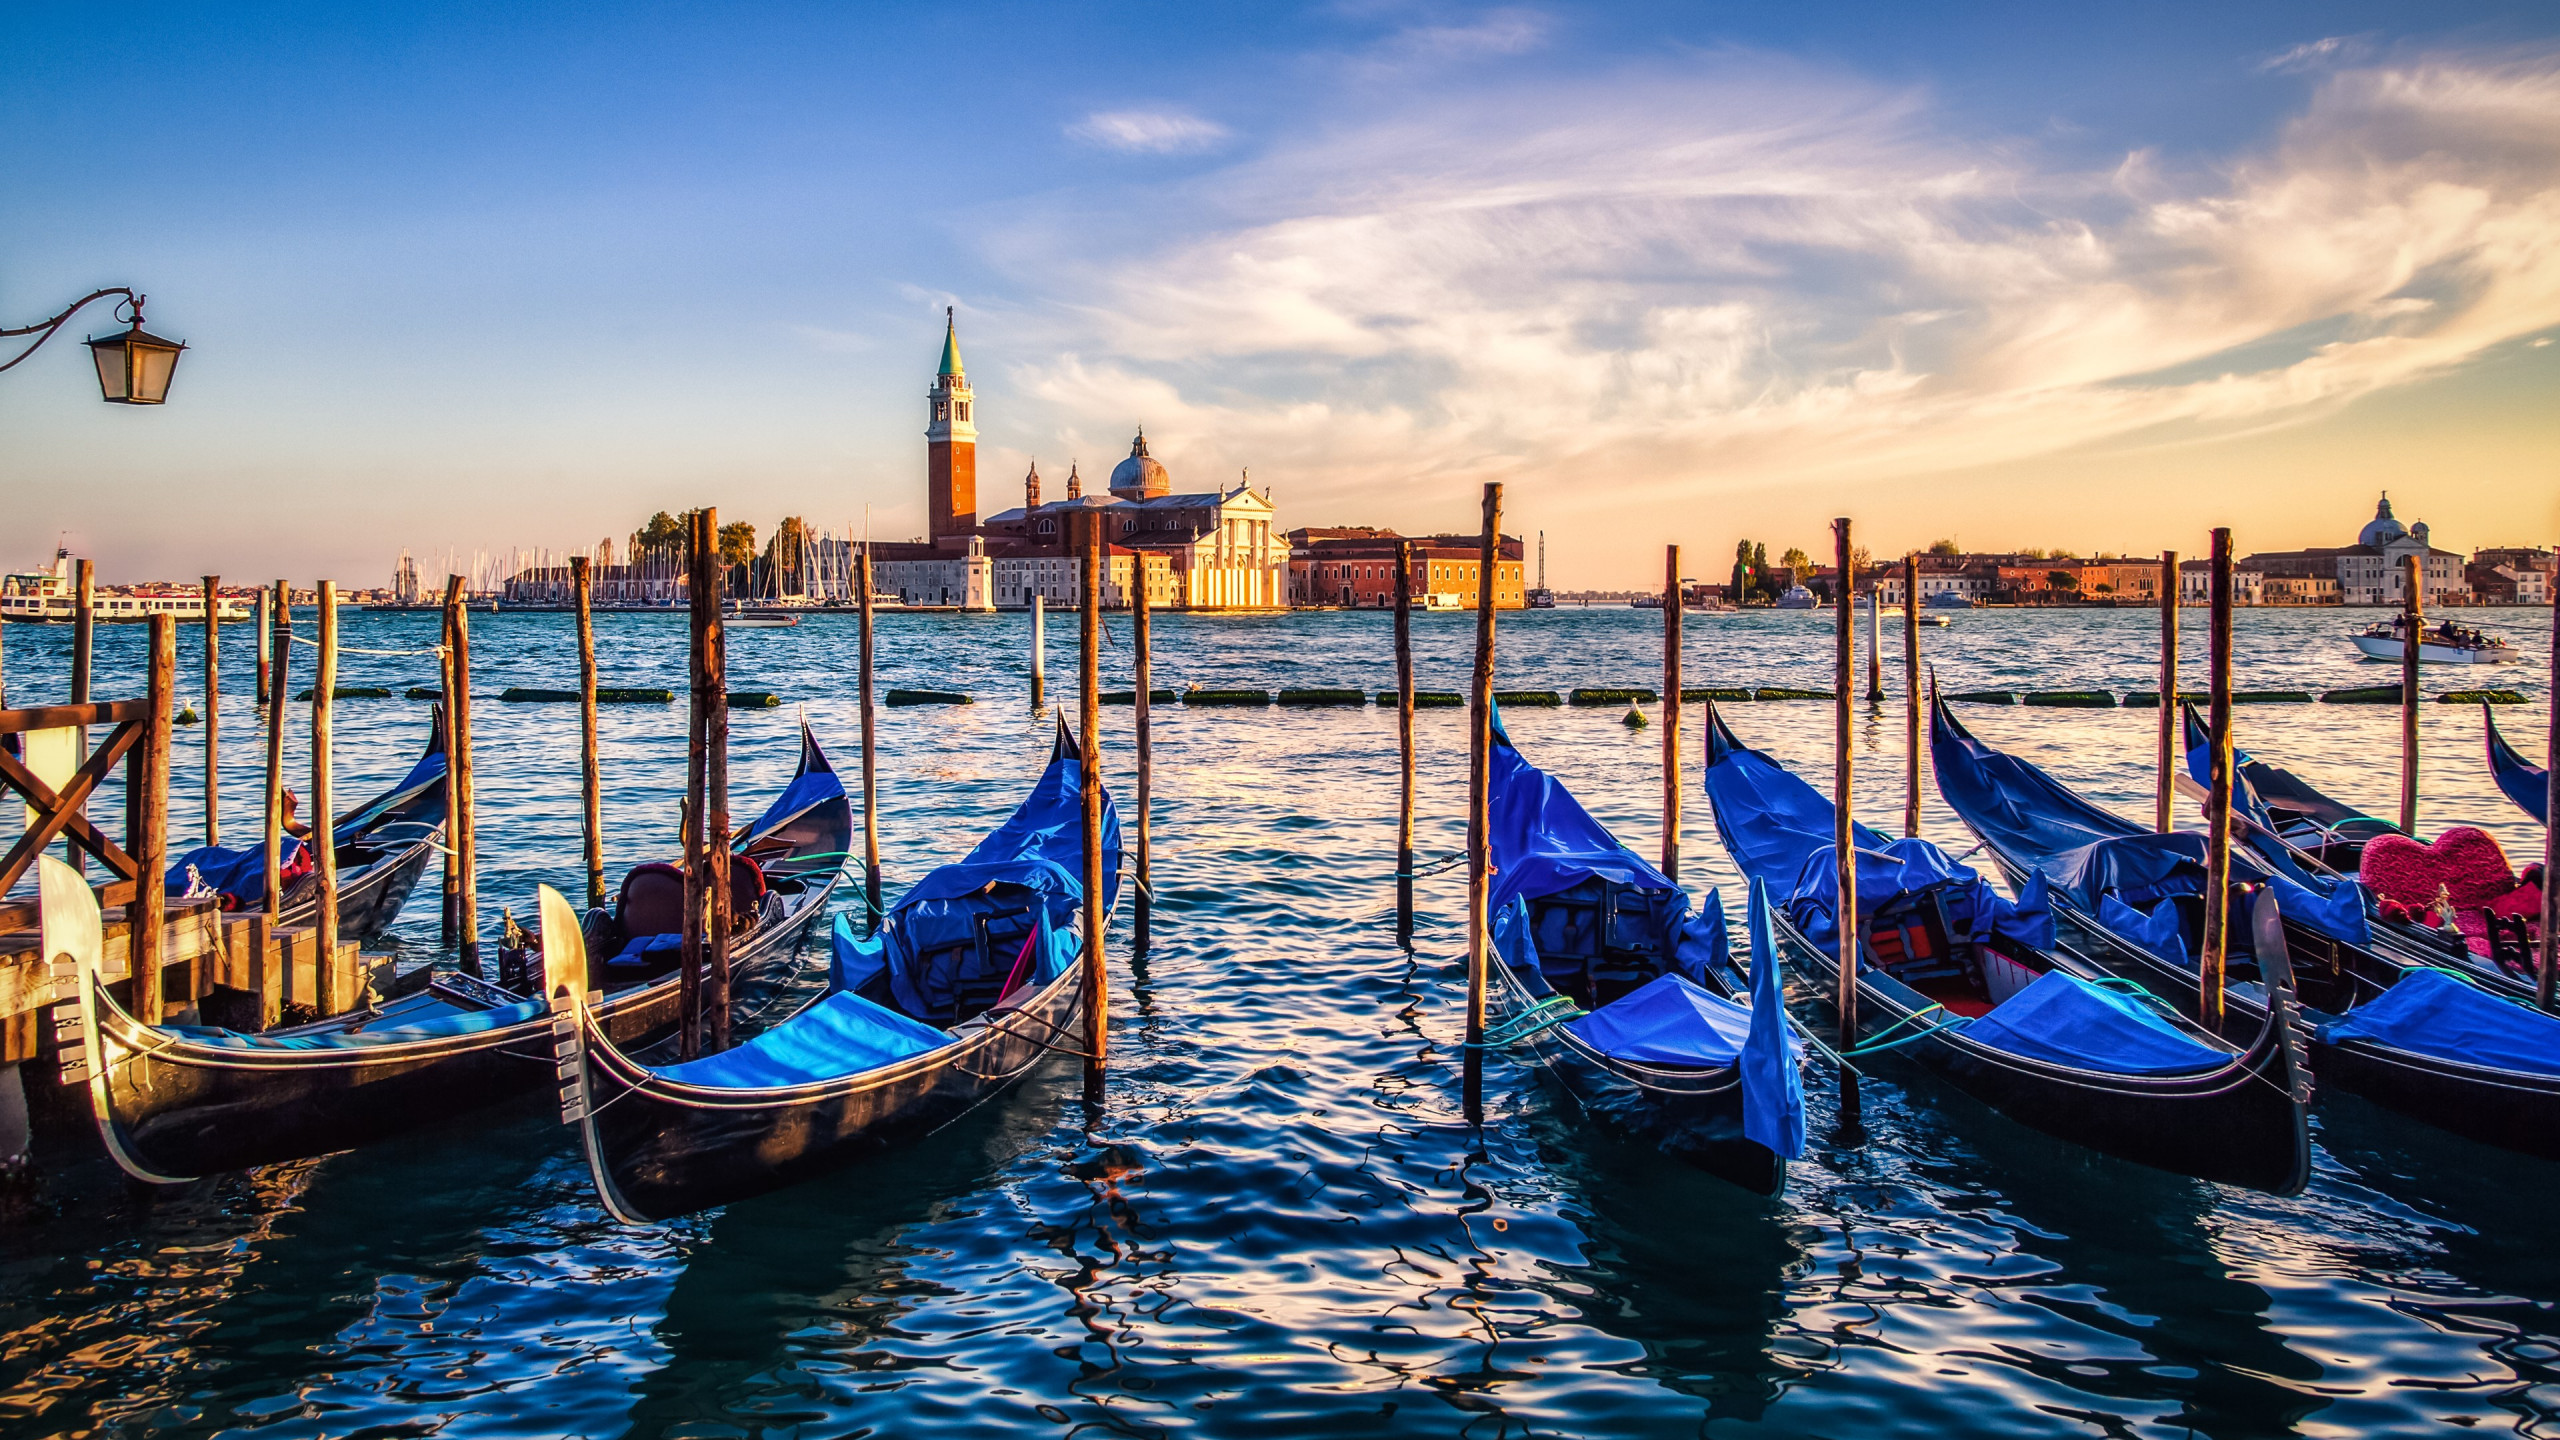 Gondolas from Venice at sunset wallpaper 2560x1440